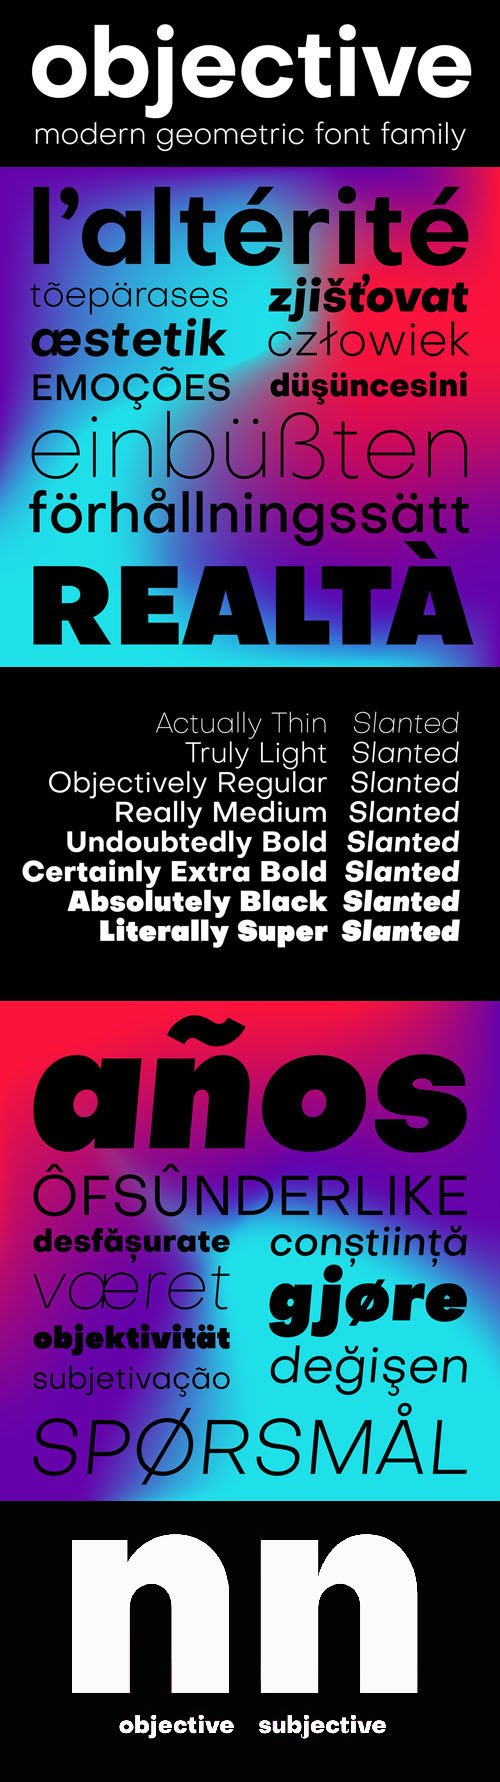 Objective Font Family (8 Weights)